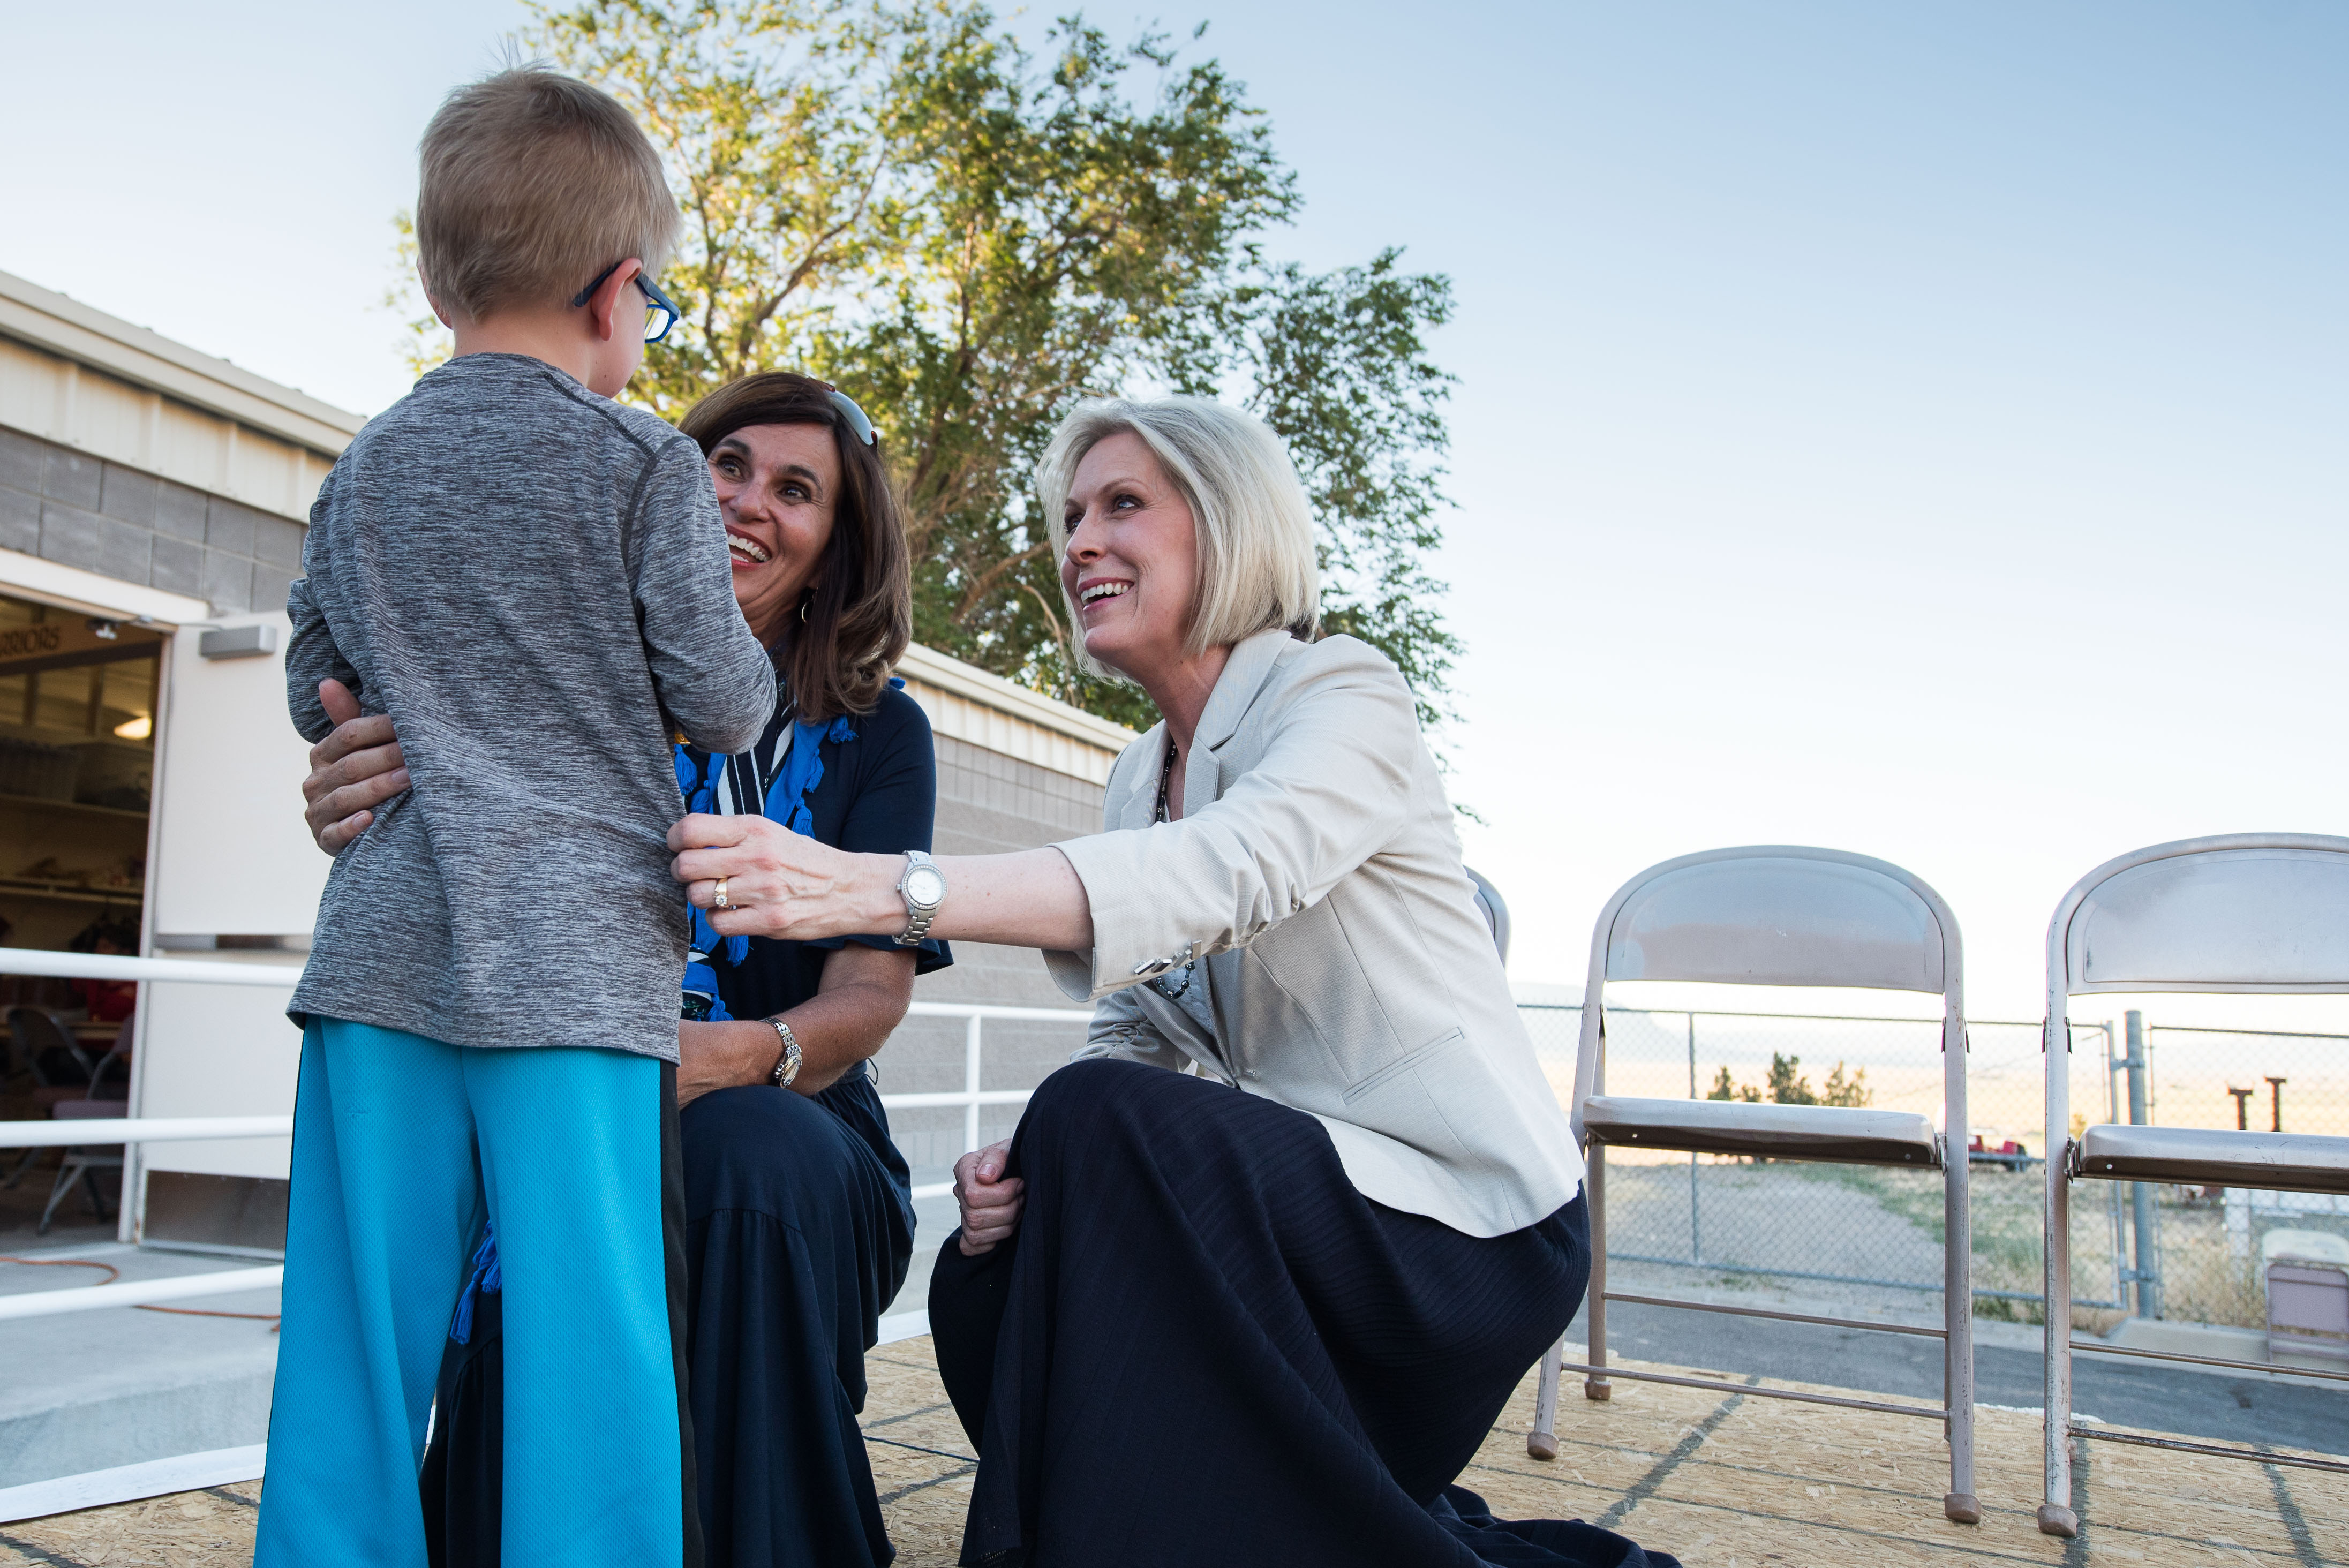 Sister Joy D. Jones, Primary general president, and Sister Lisa L. Harkness, first counselor in the Primary presidency, greet children performing in the Mormon Miracle Pageant in Manti, Utah on June 20.